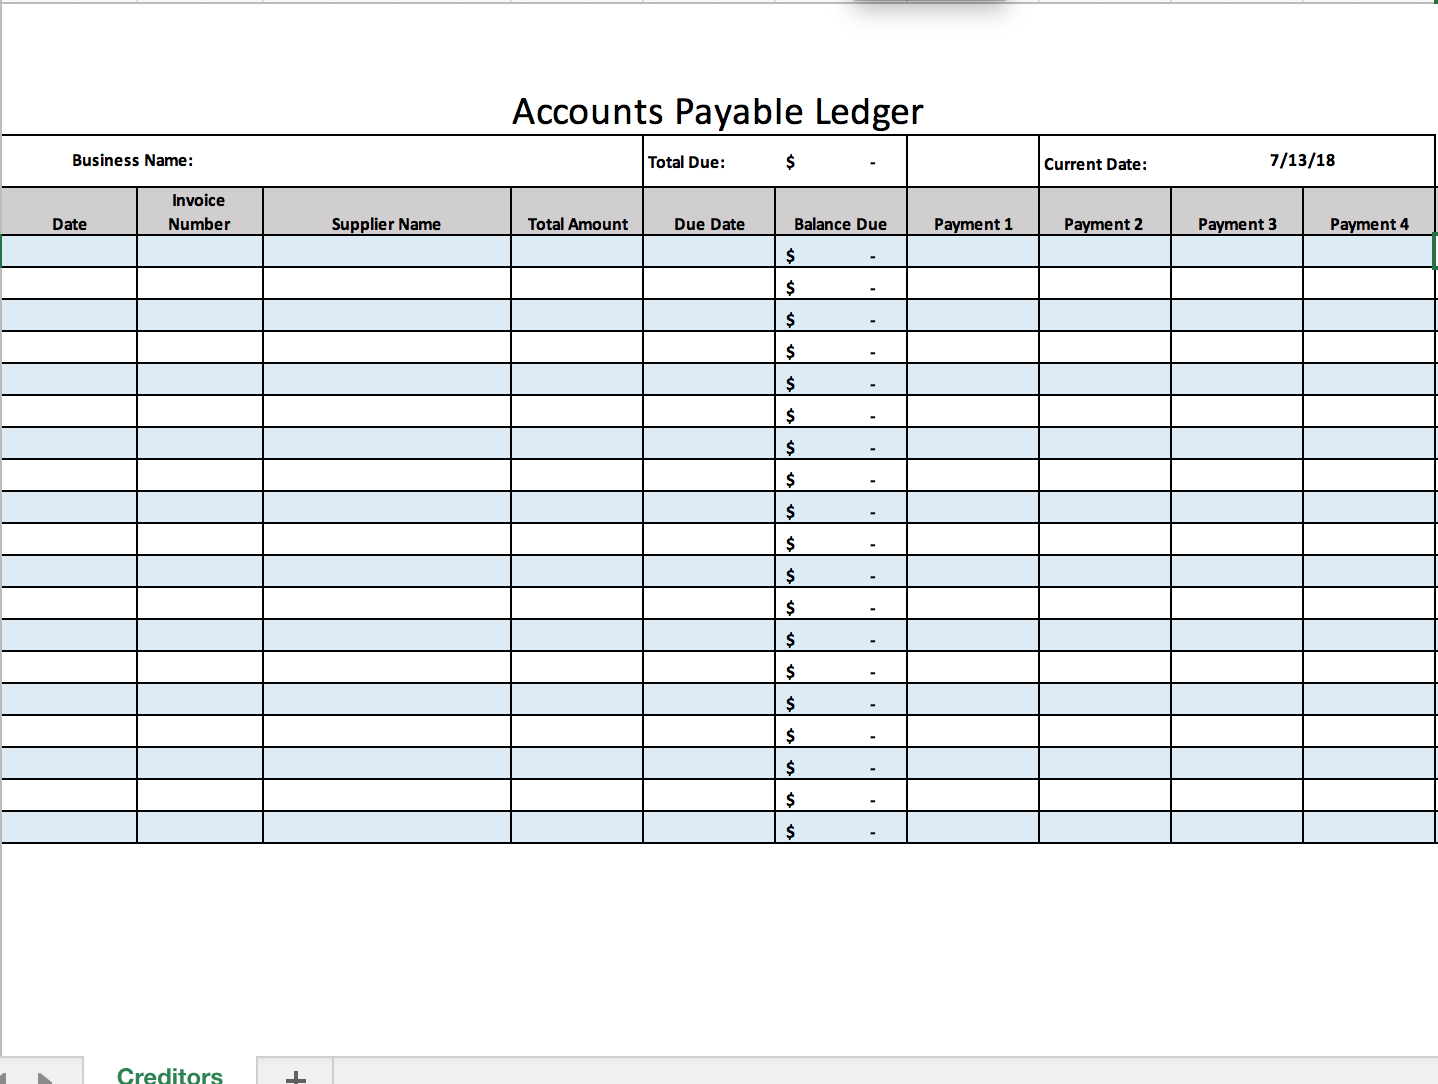 Accounts Payable Ledger